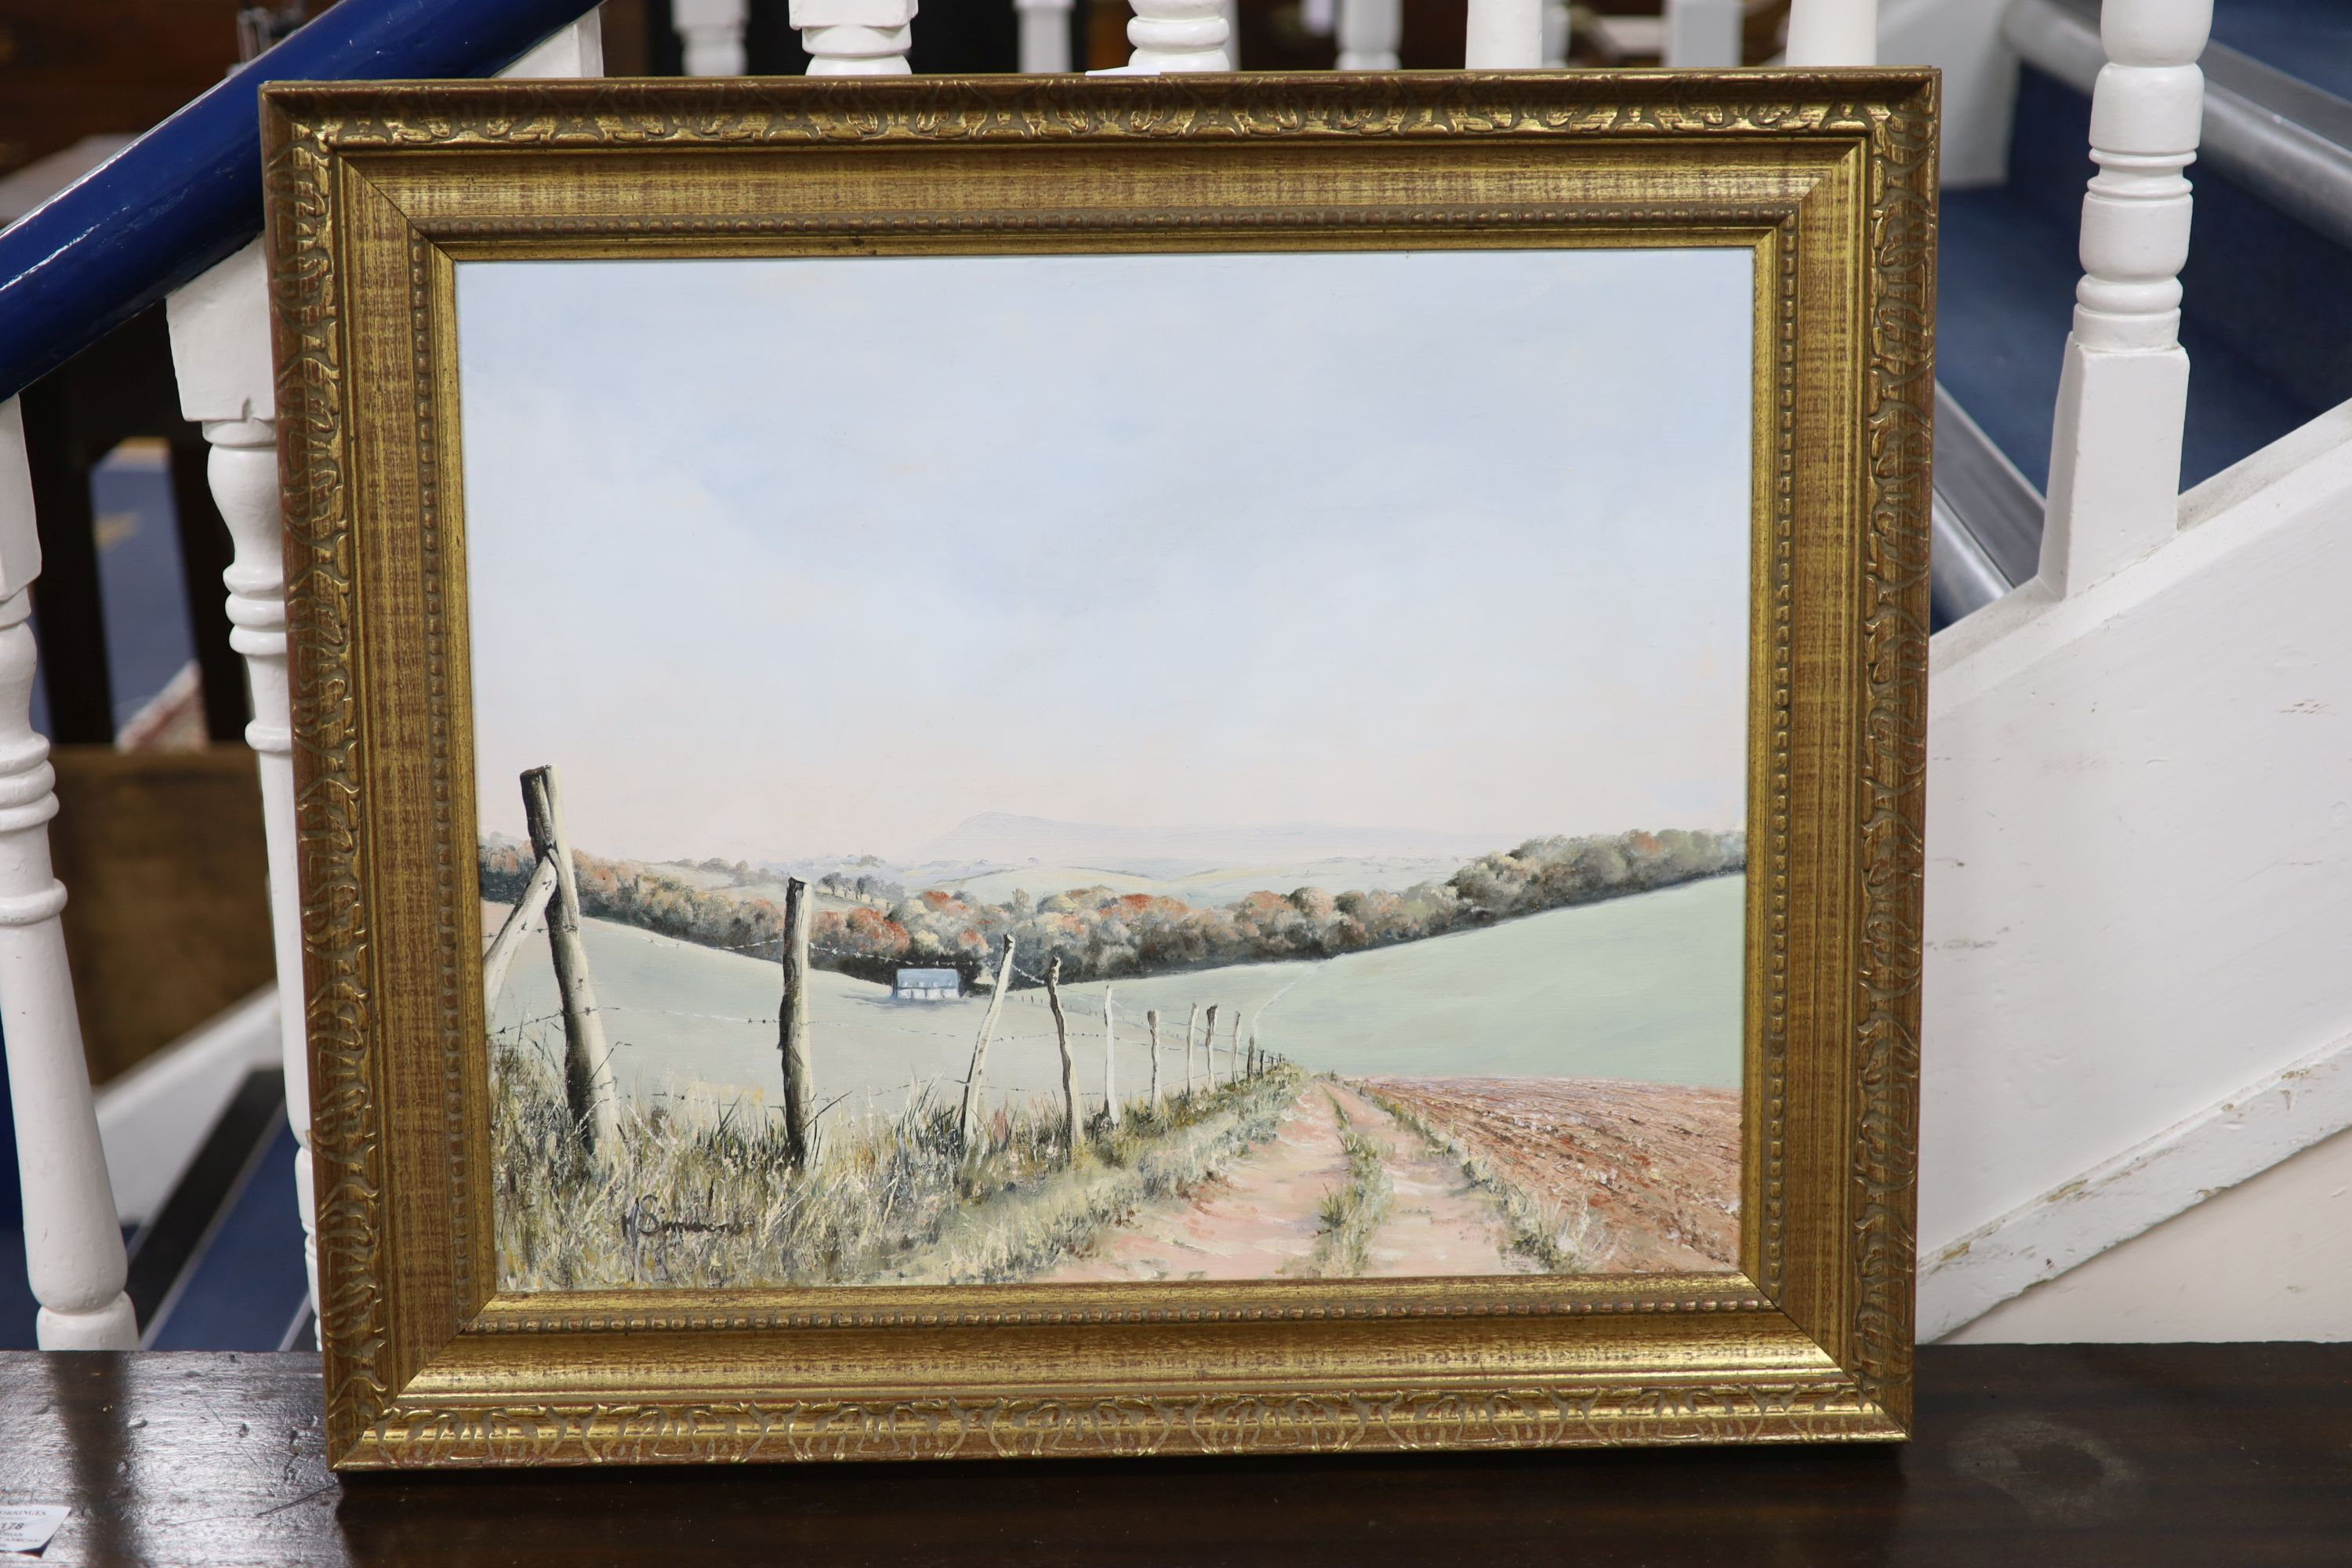 Michael Simmons, oil on canvas, The South Downs Way, signed, 45 x 55cm - Image 2 of 2